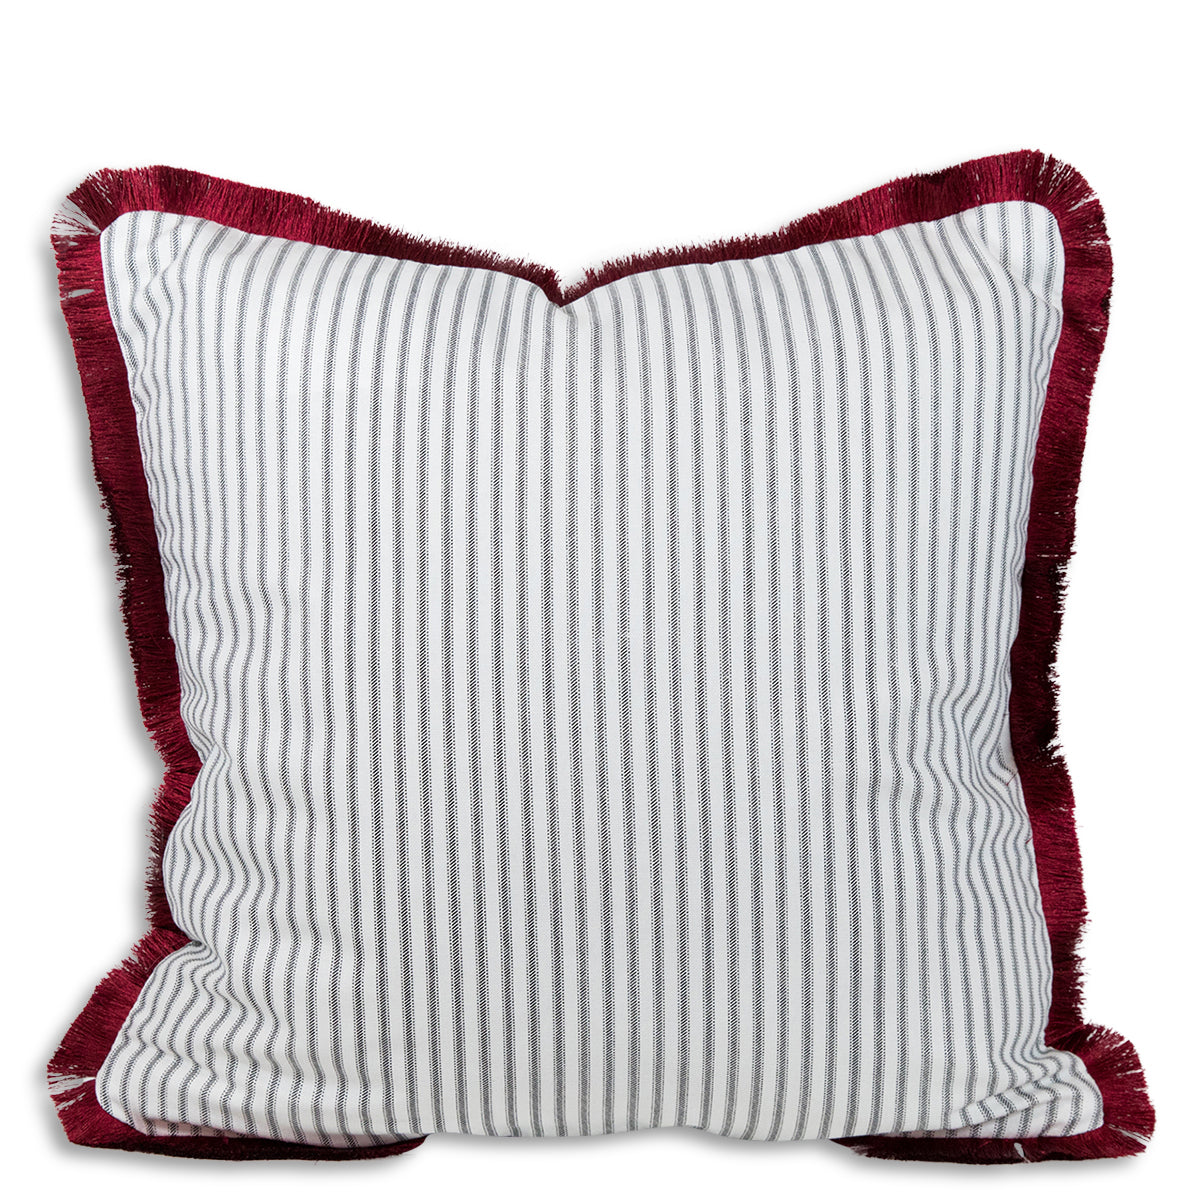 Ophelia Striped Fringe Pillow - Black + Red